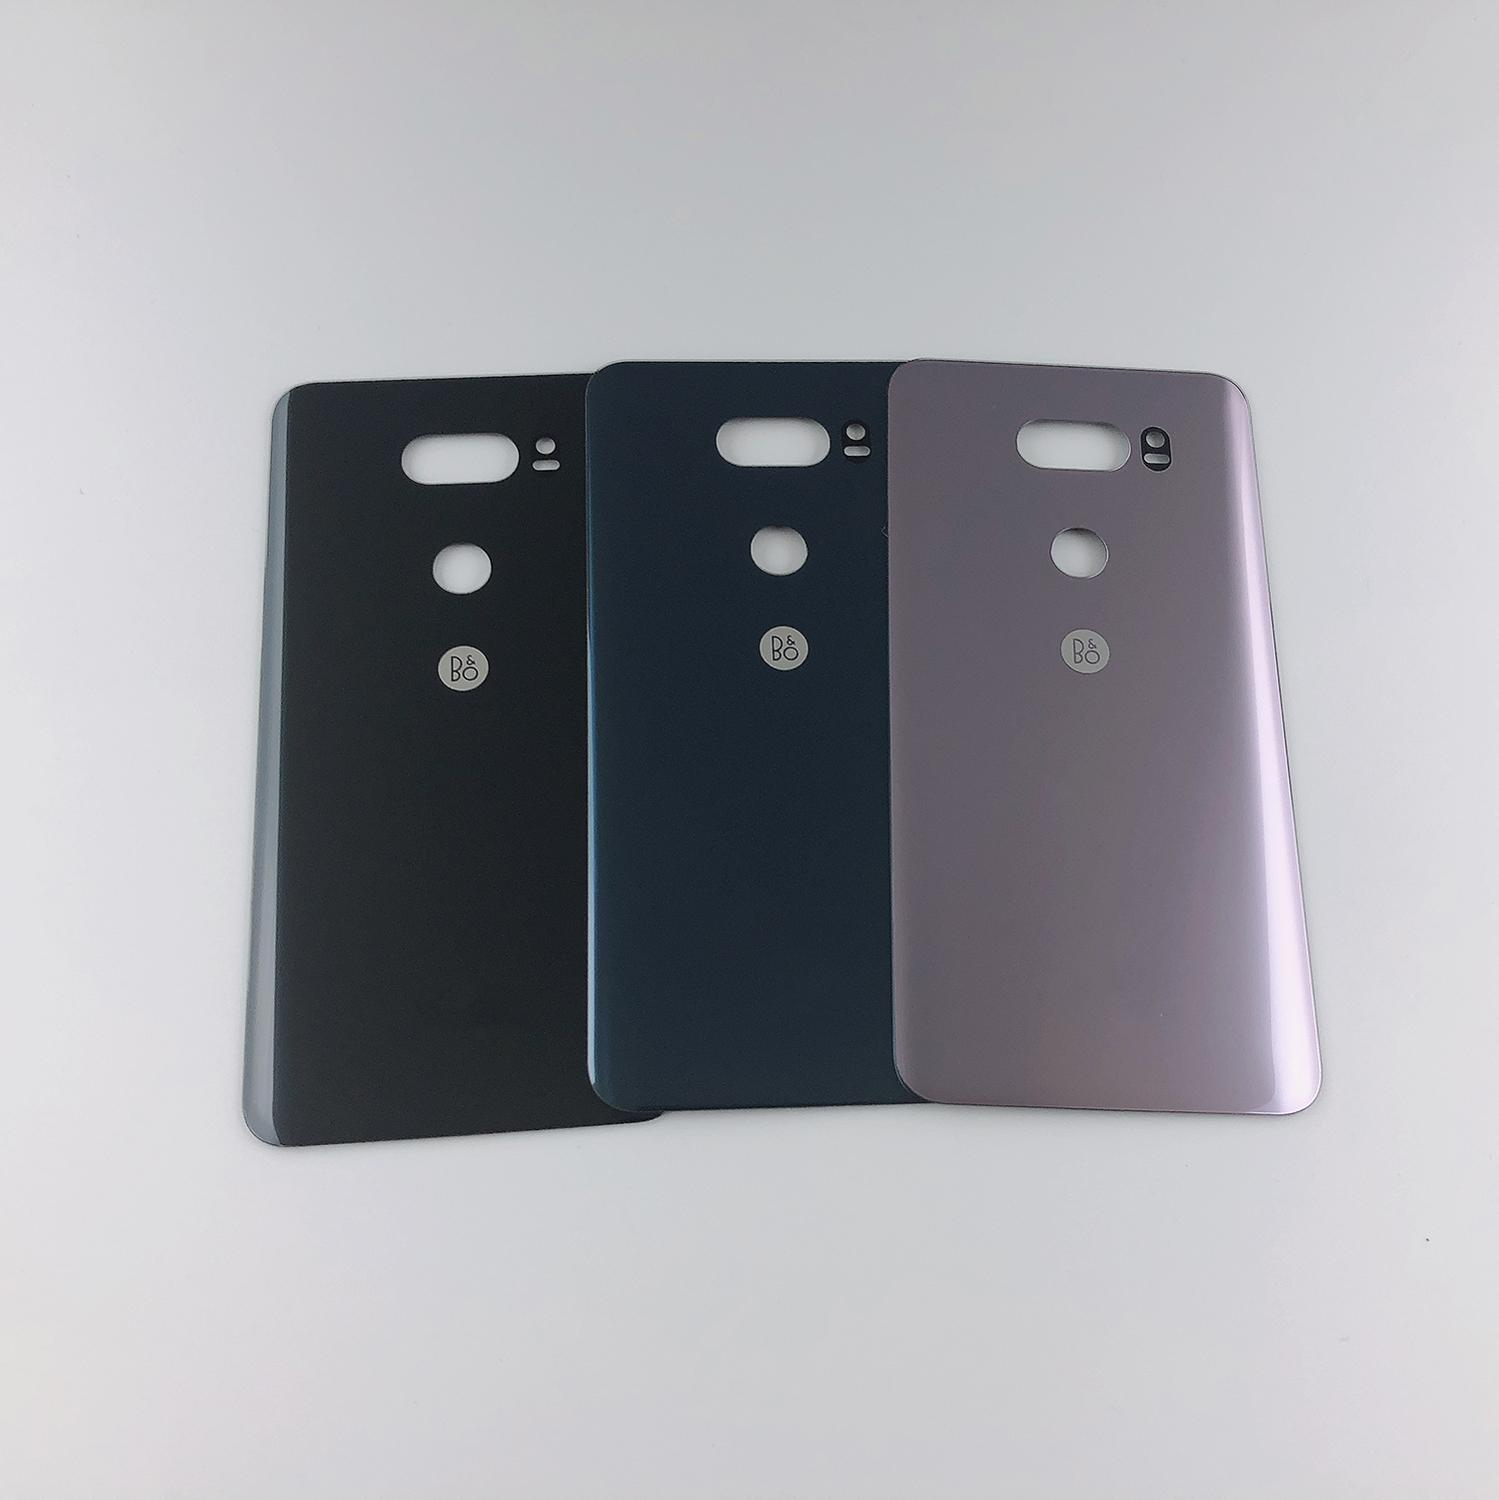 Original For LG V30+/V30 VS996 LS998U H933 LS998U H930 Housing Back Glass Battery Cover + Sticker